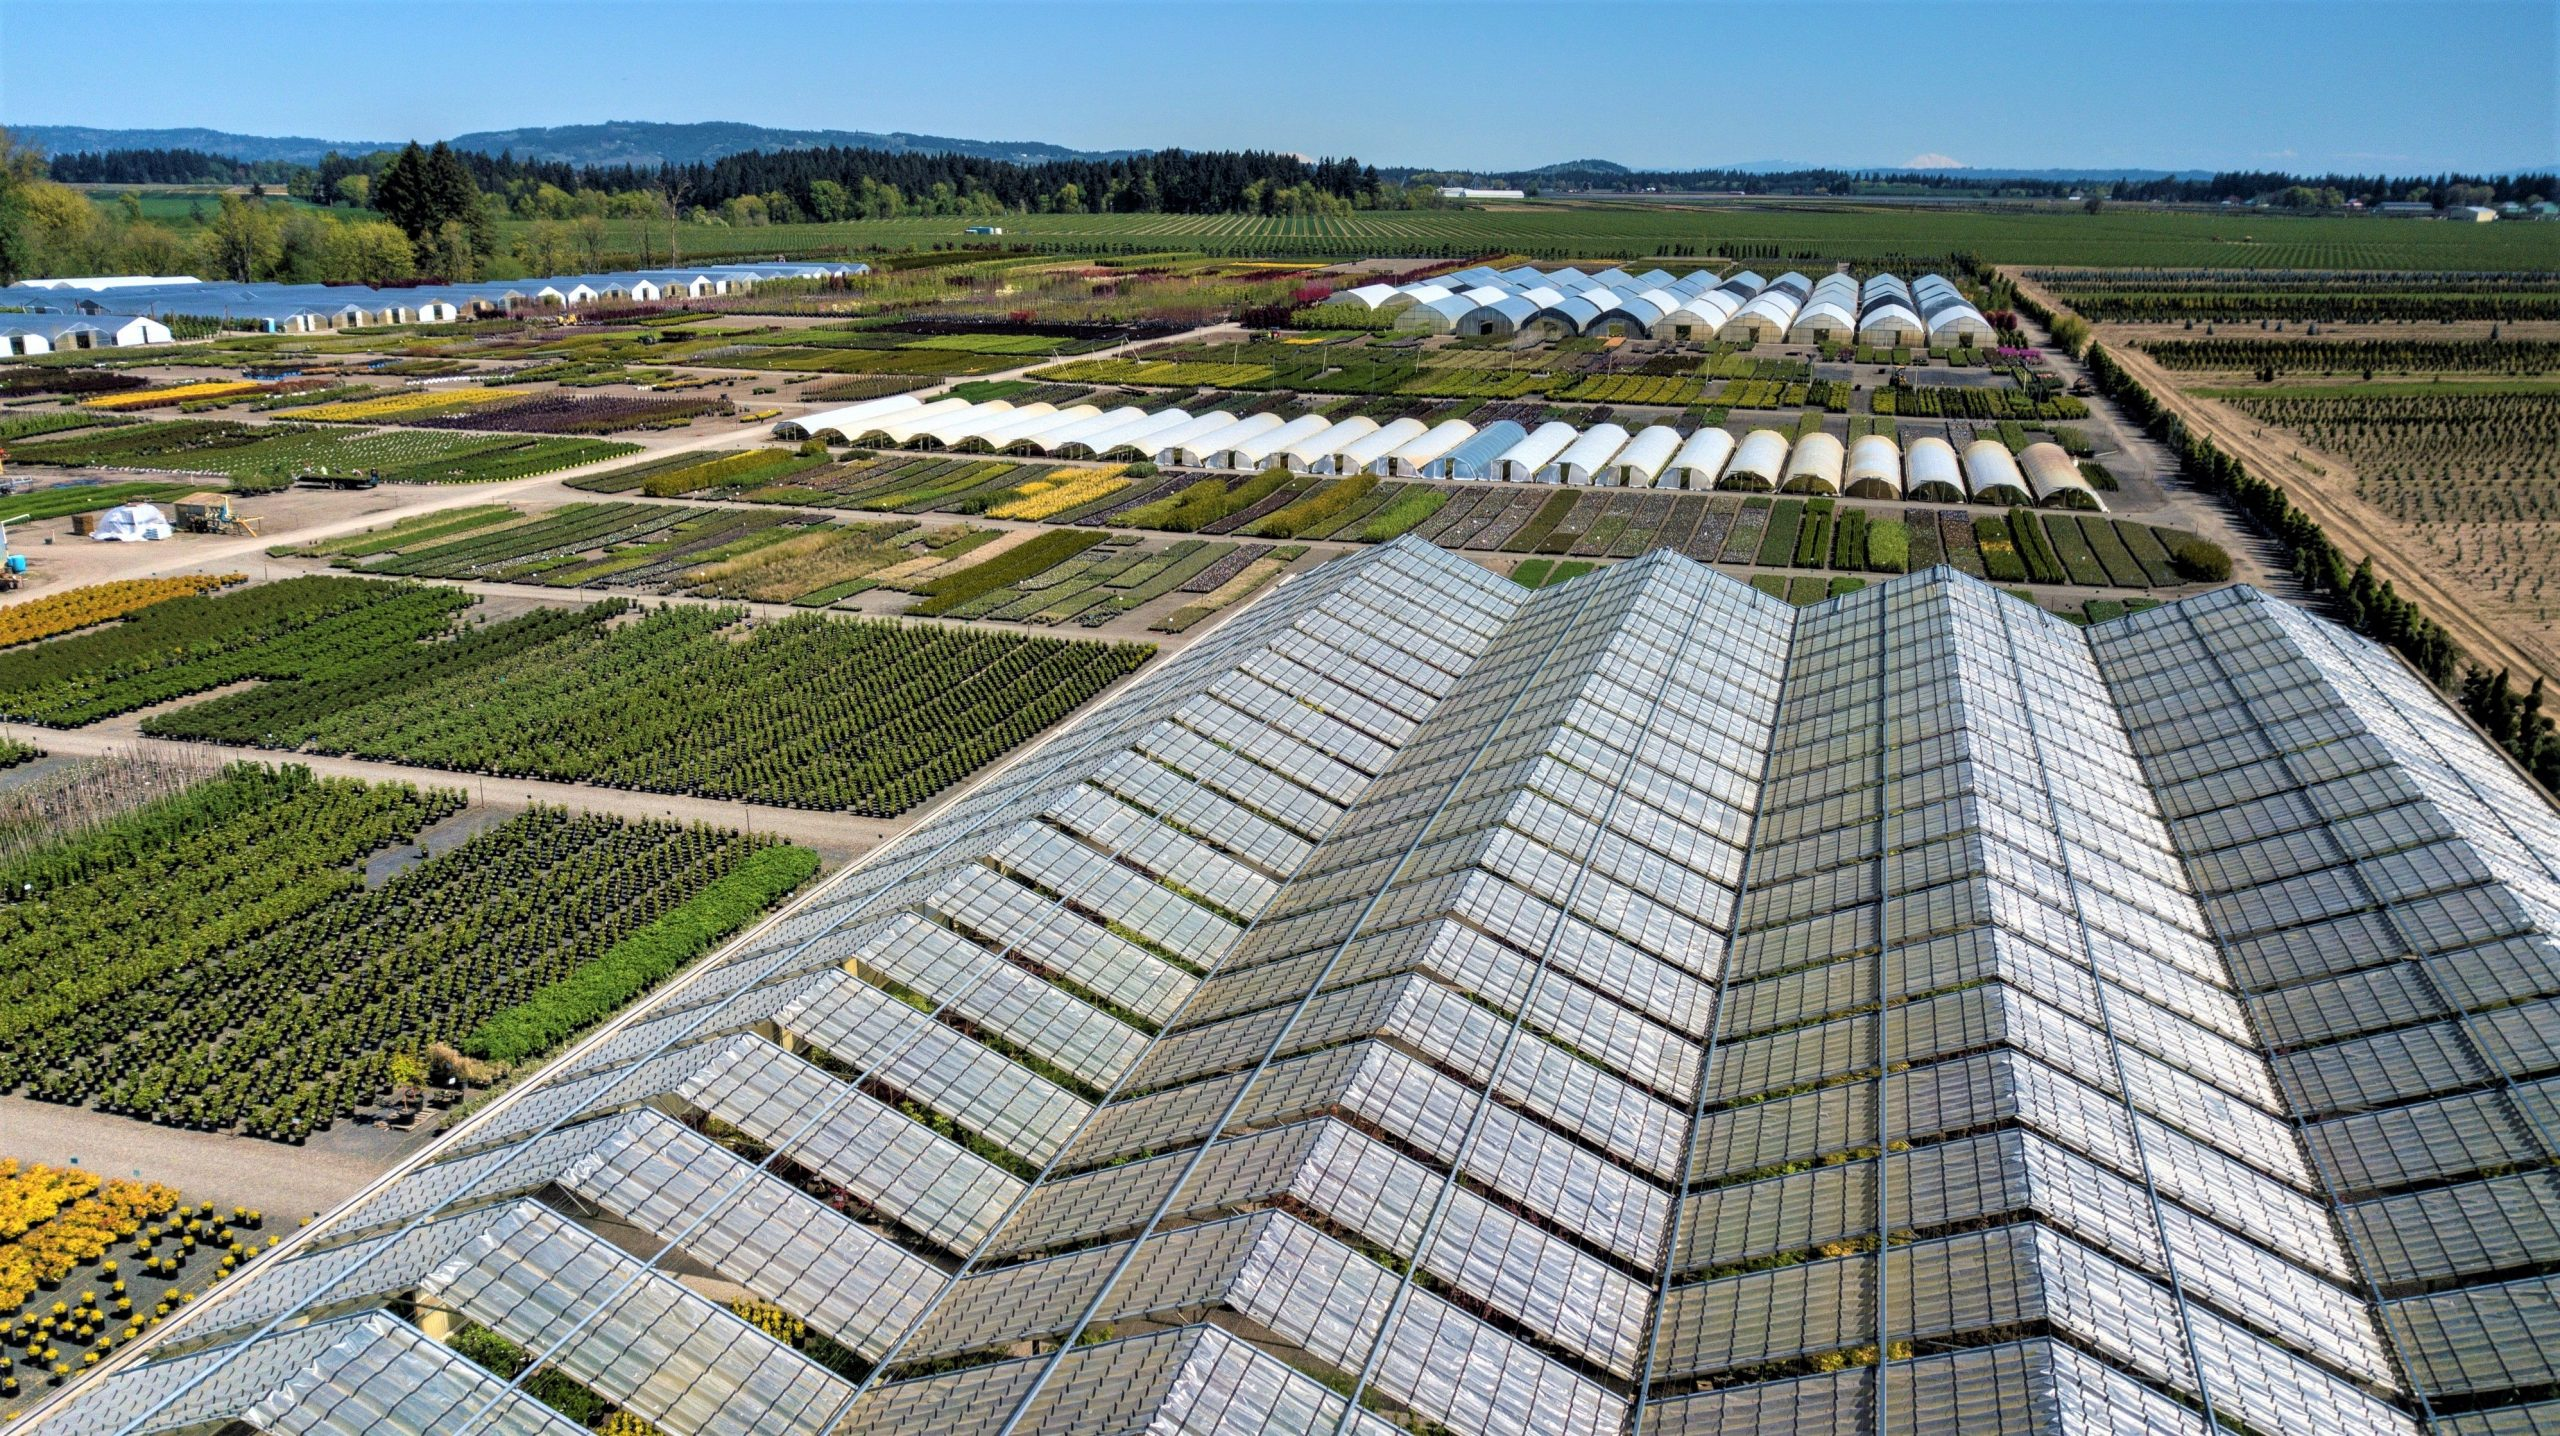 aerial view of garden and solar panels